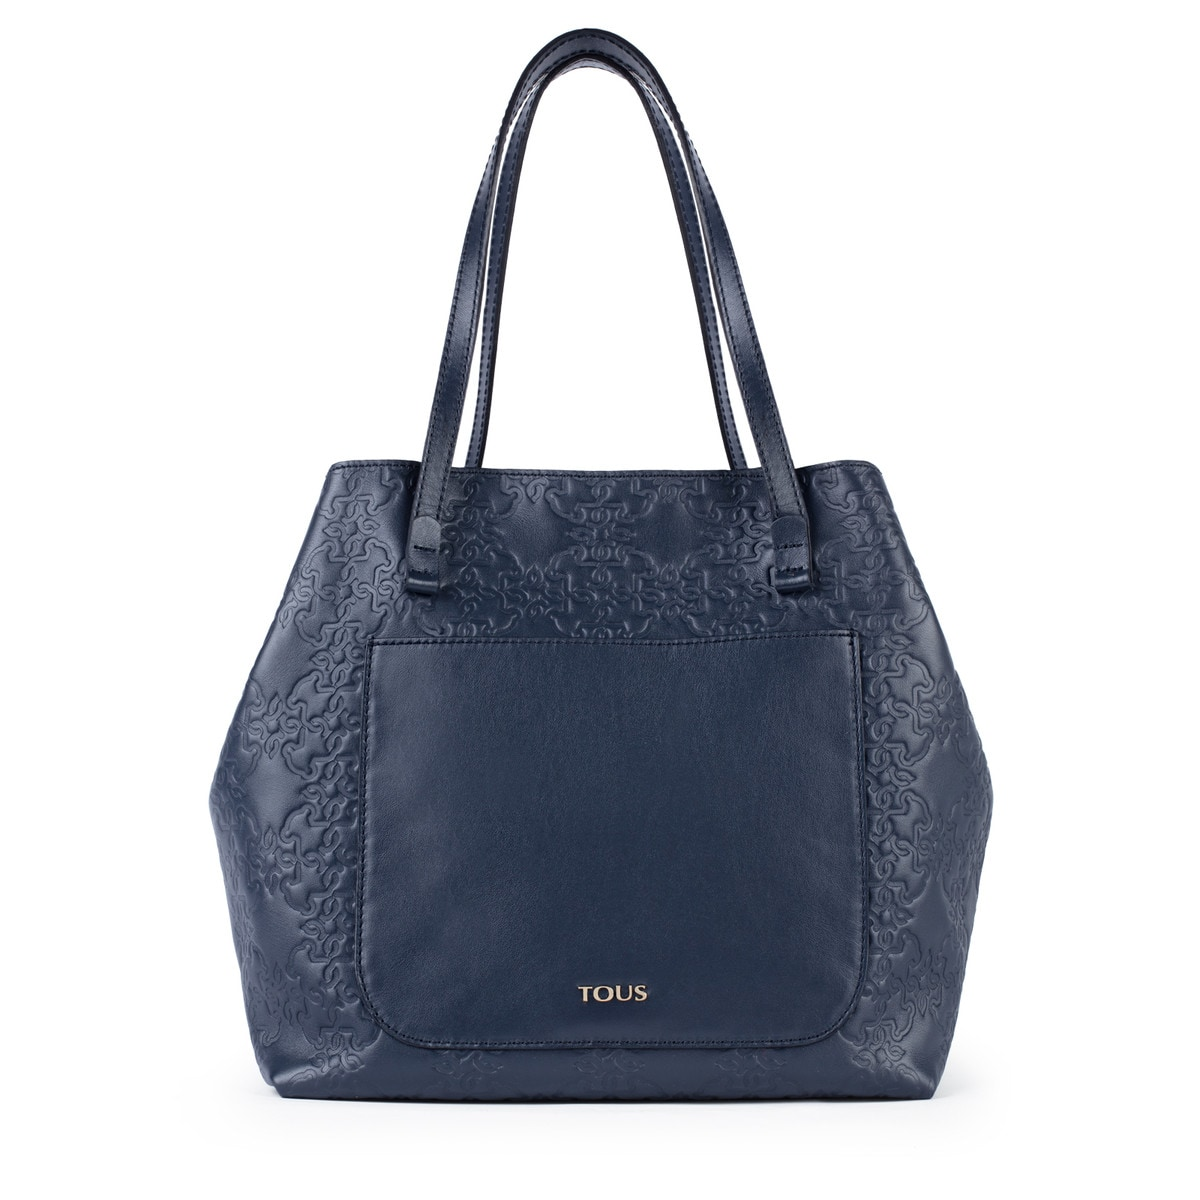 6eba451ff0 Large navy colored Leather Mossaic Tote bag - Tous Site US